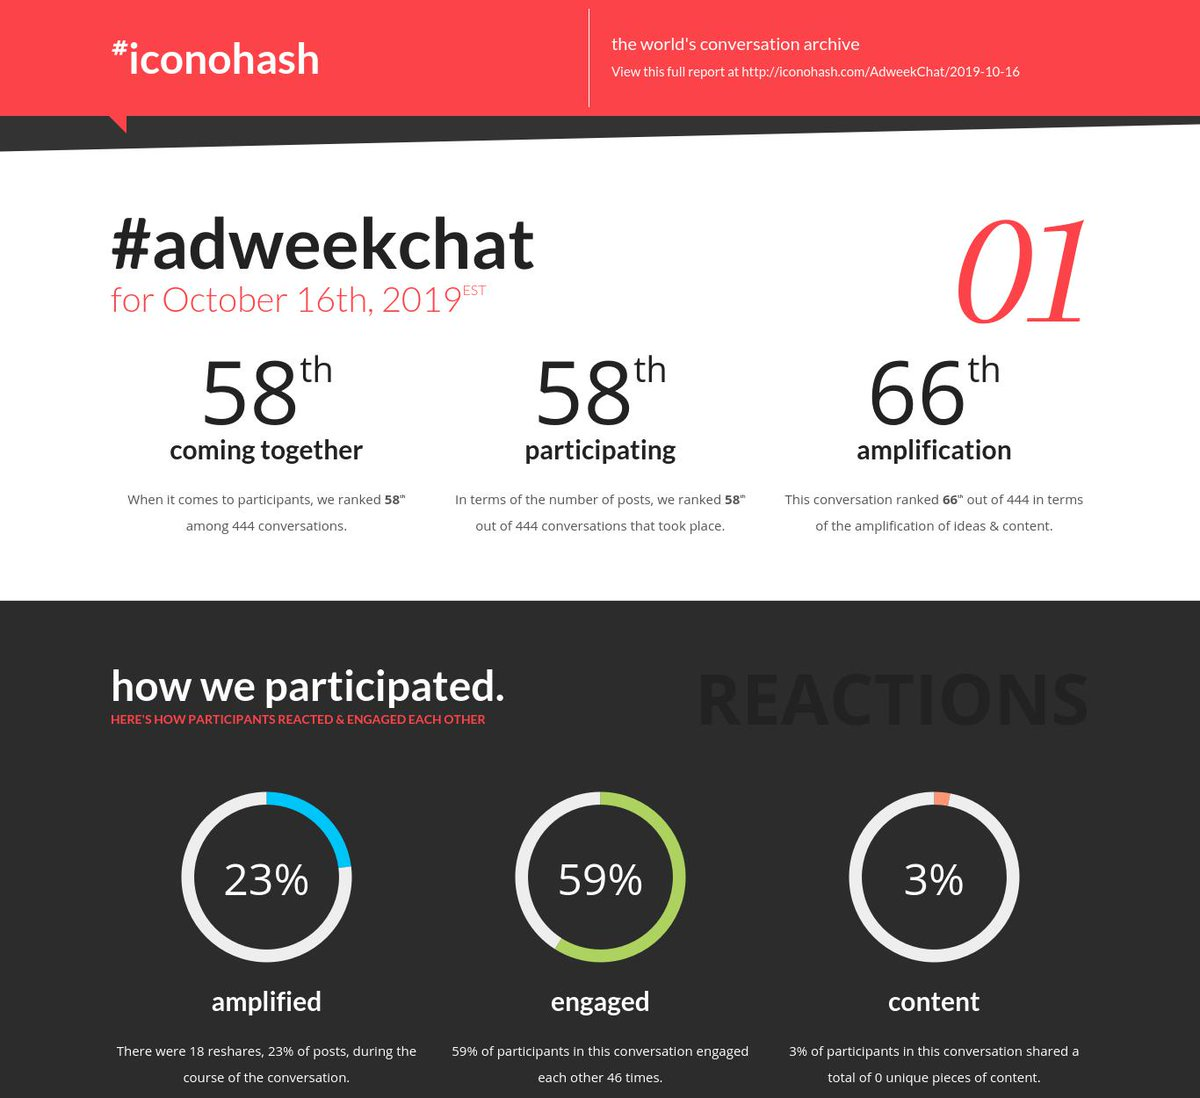 Your daily conversation report is ready for #AdweekChat for Oct 16th http://iconohash.com/AdweekChat/2019-10-16 …